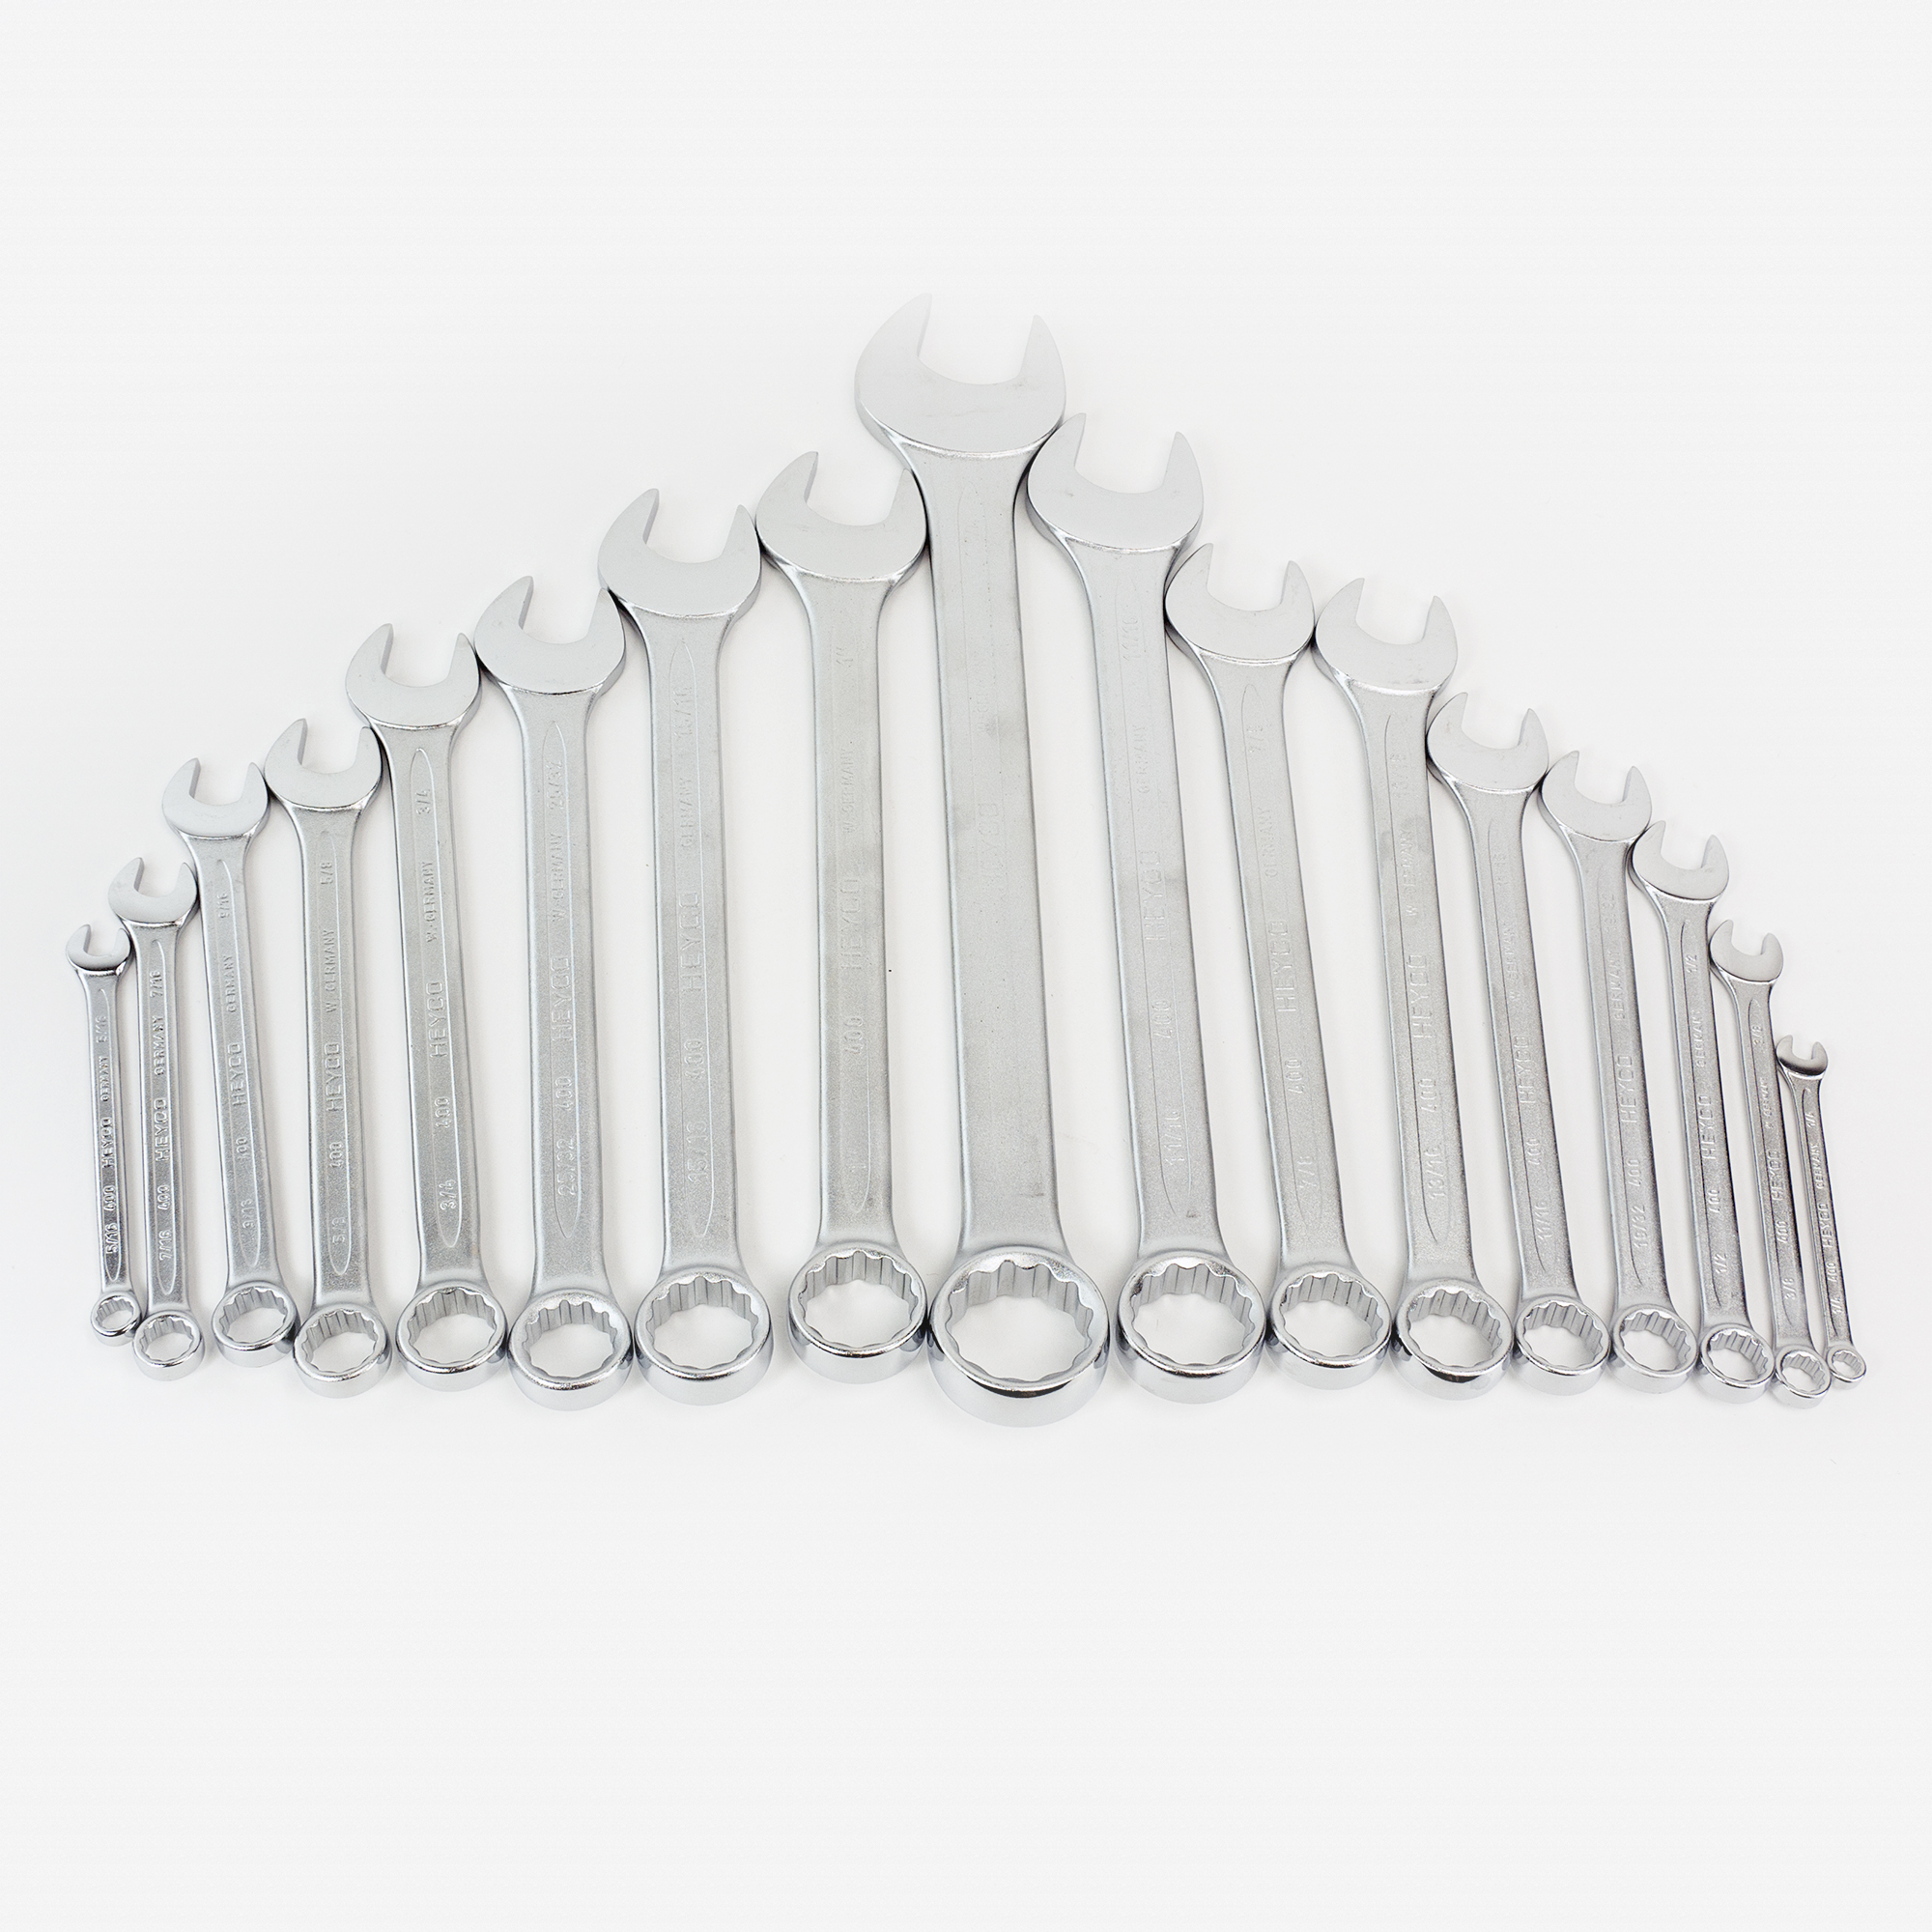 """Heyco 4009390 SAE 1/4 - 1 1/4"""" Combination Wrench Set, 16 Pieces - KC Tool"""